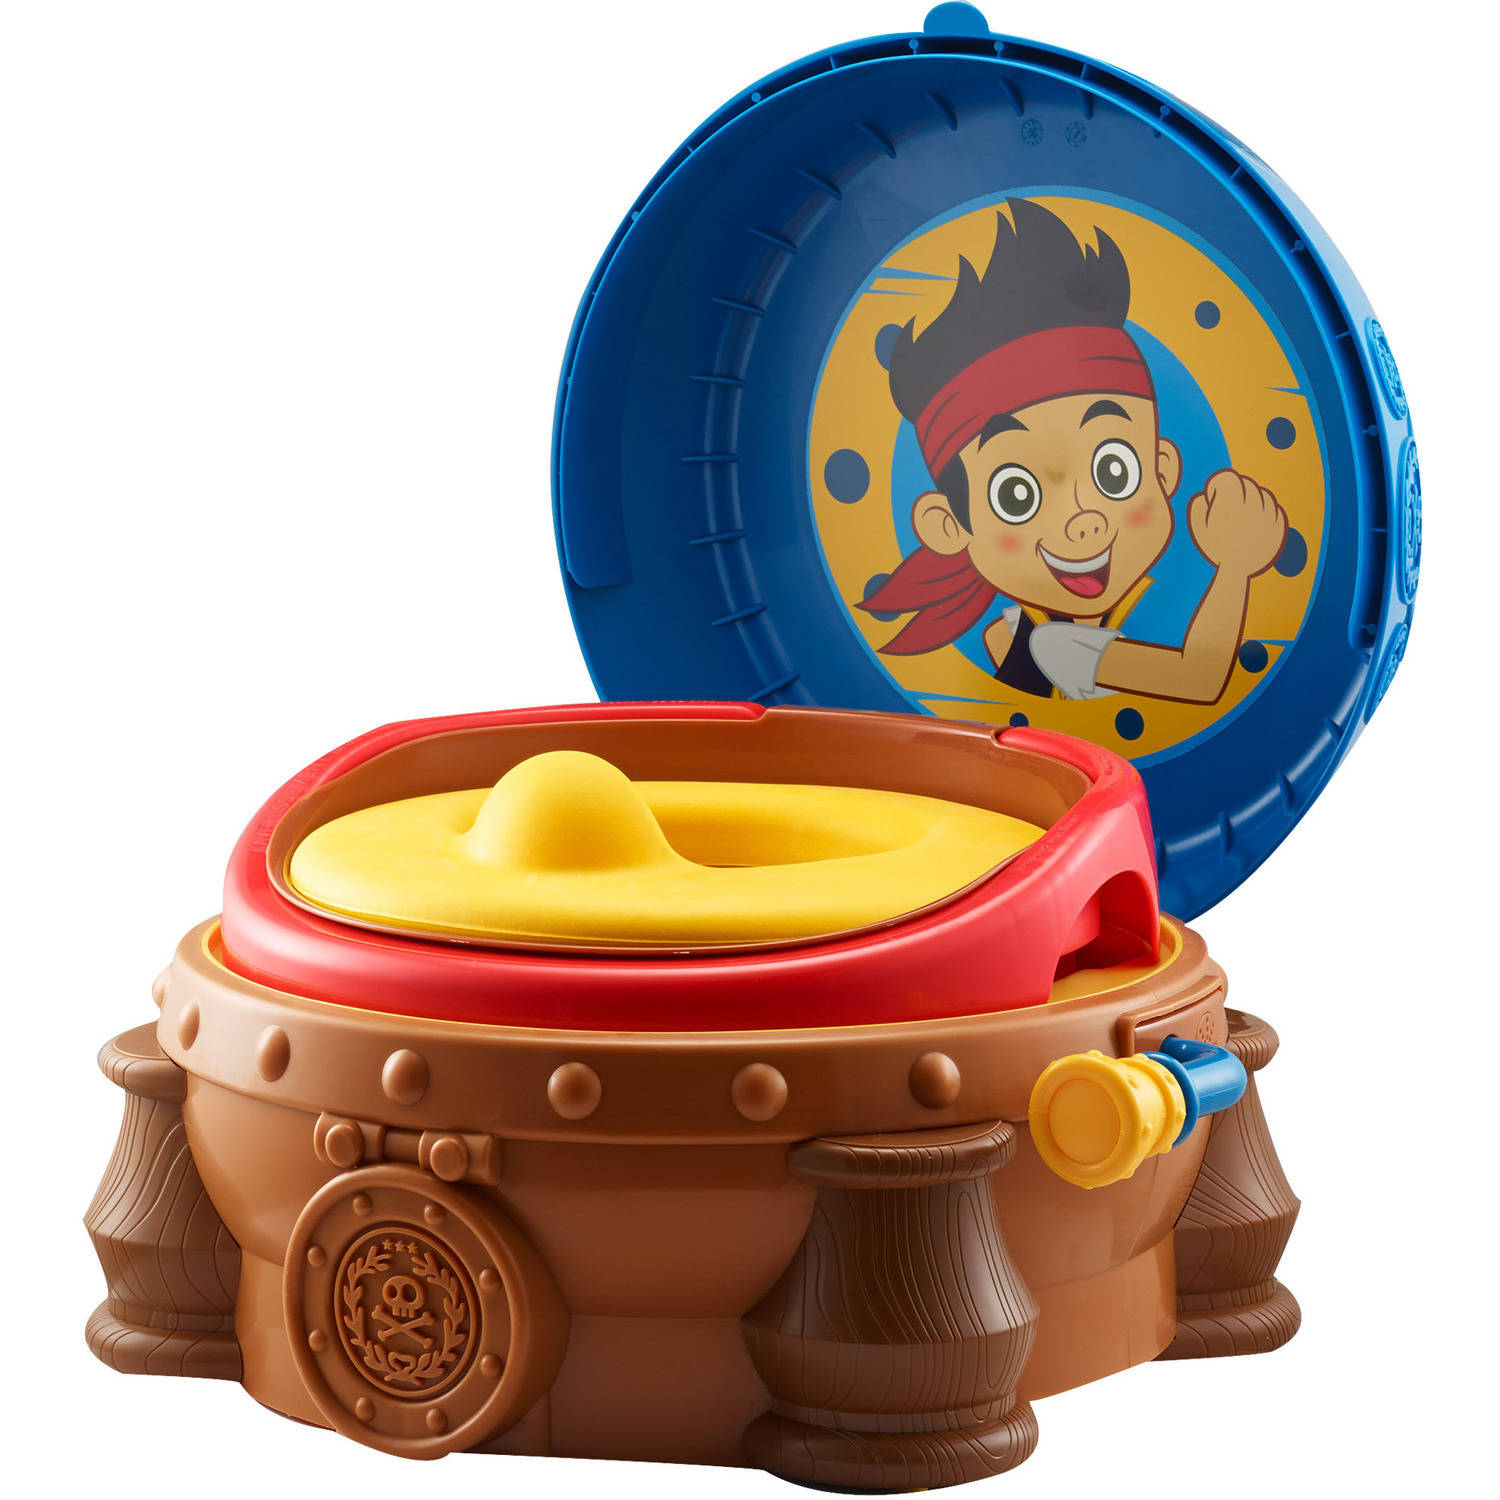 The First Years Disney Junior Jake and the Never Land Pirates  3-in-1 Potty System